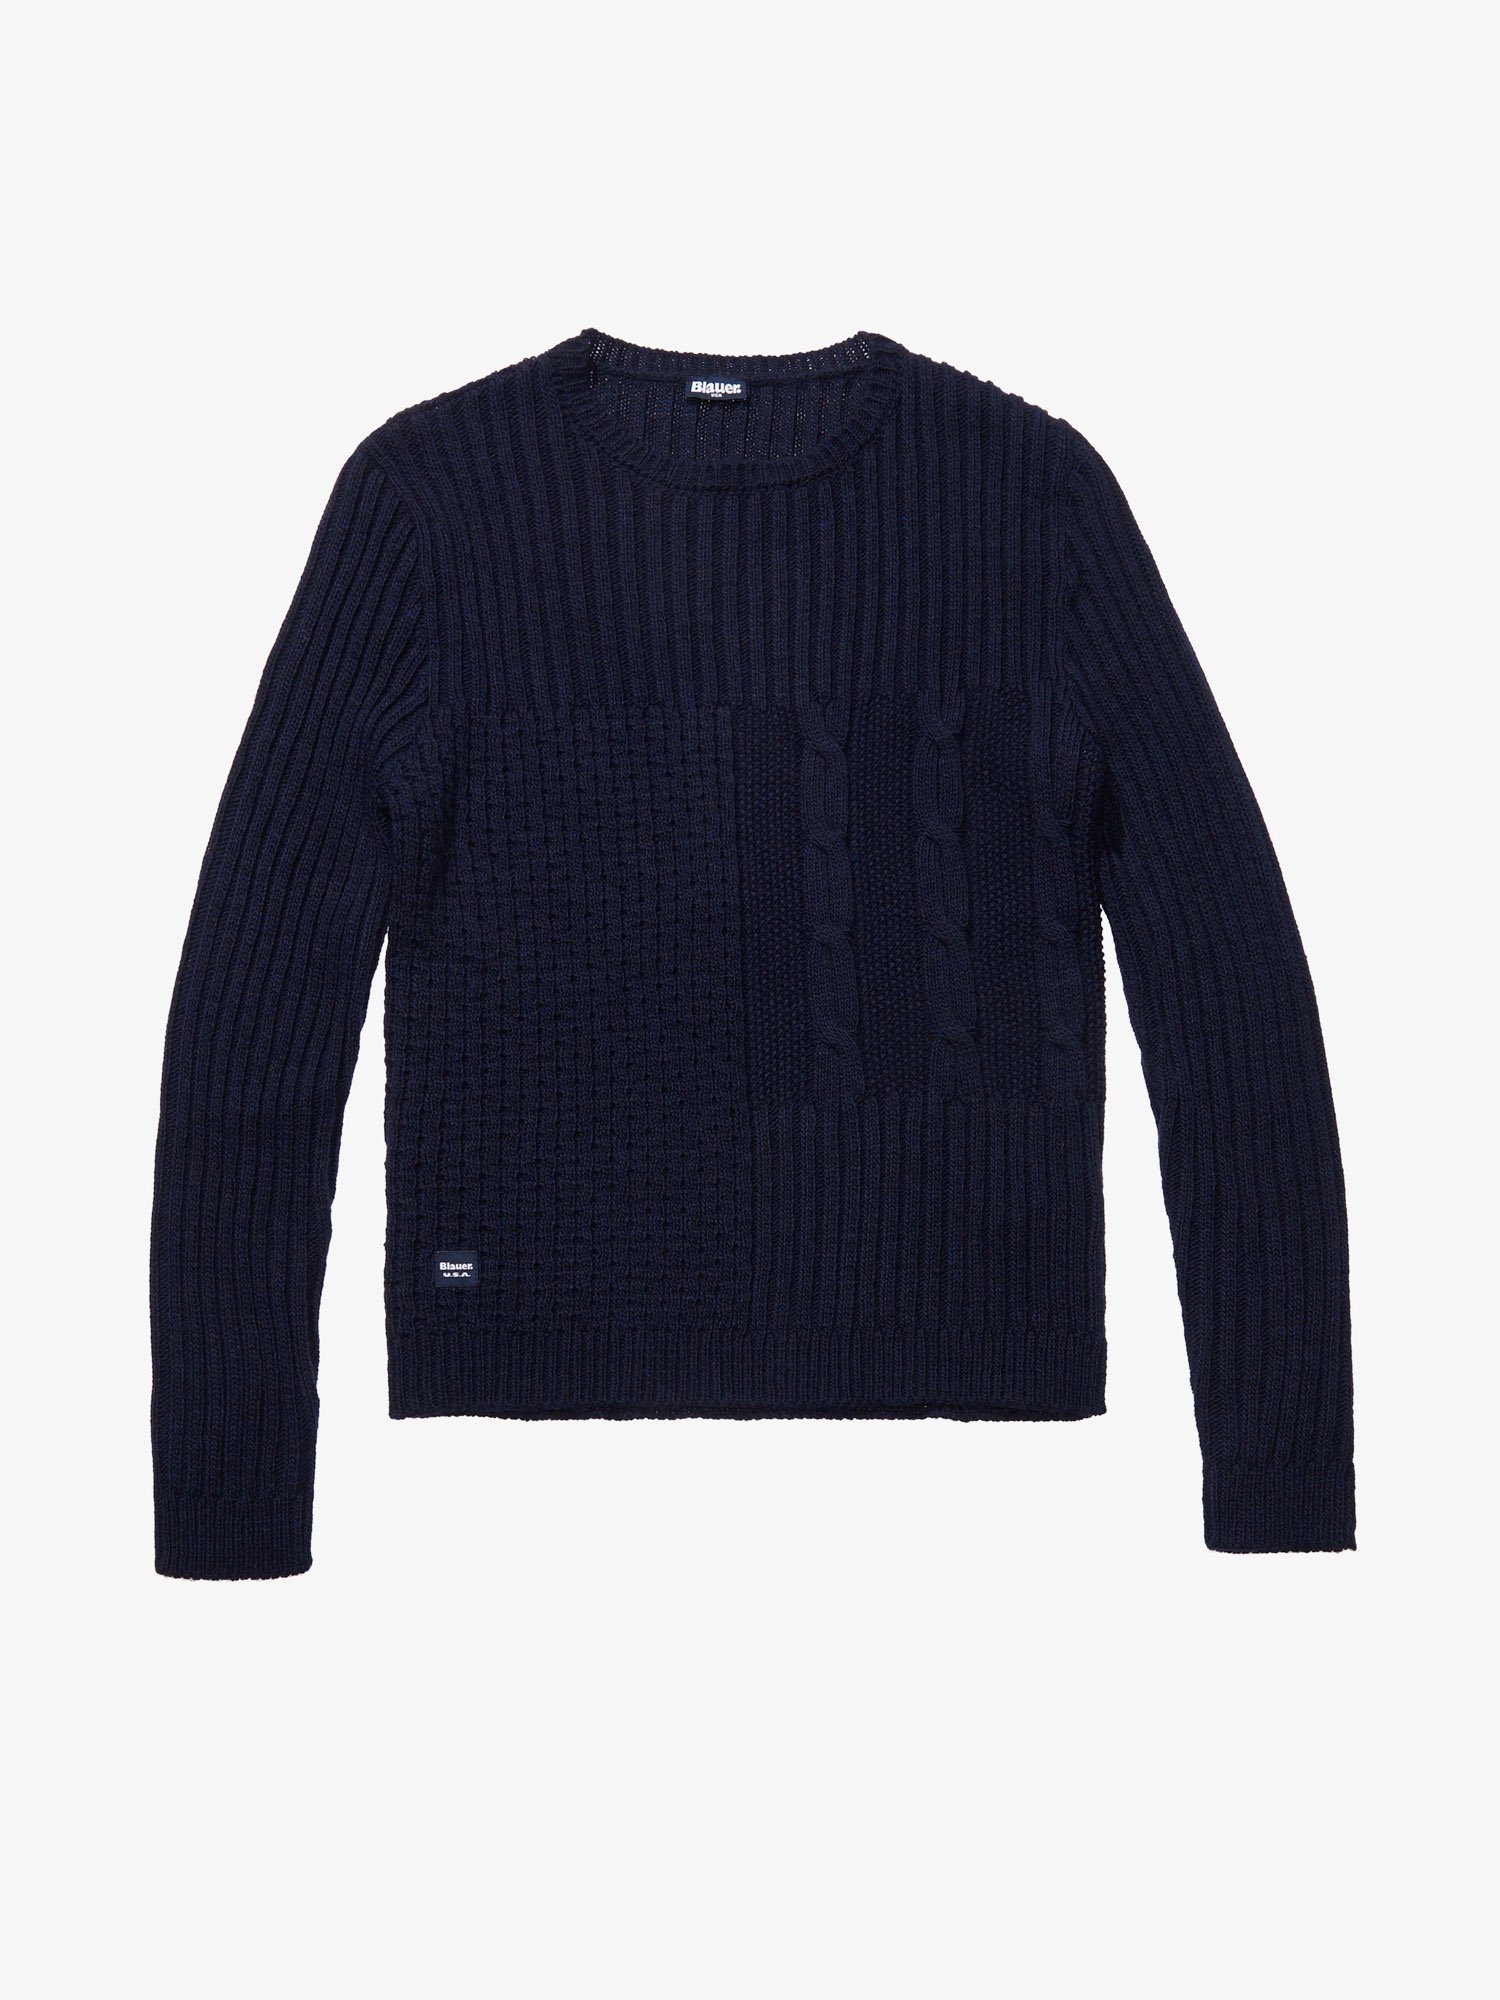 CREW NECK WOOL-BLEND SWEATER - Blauer